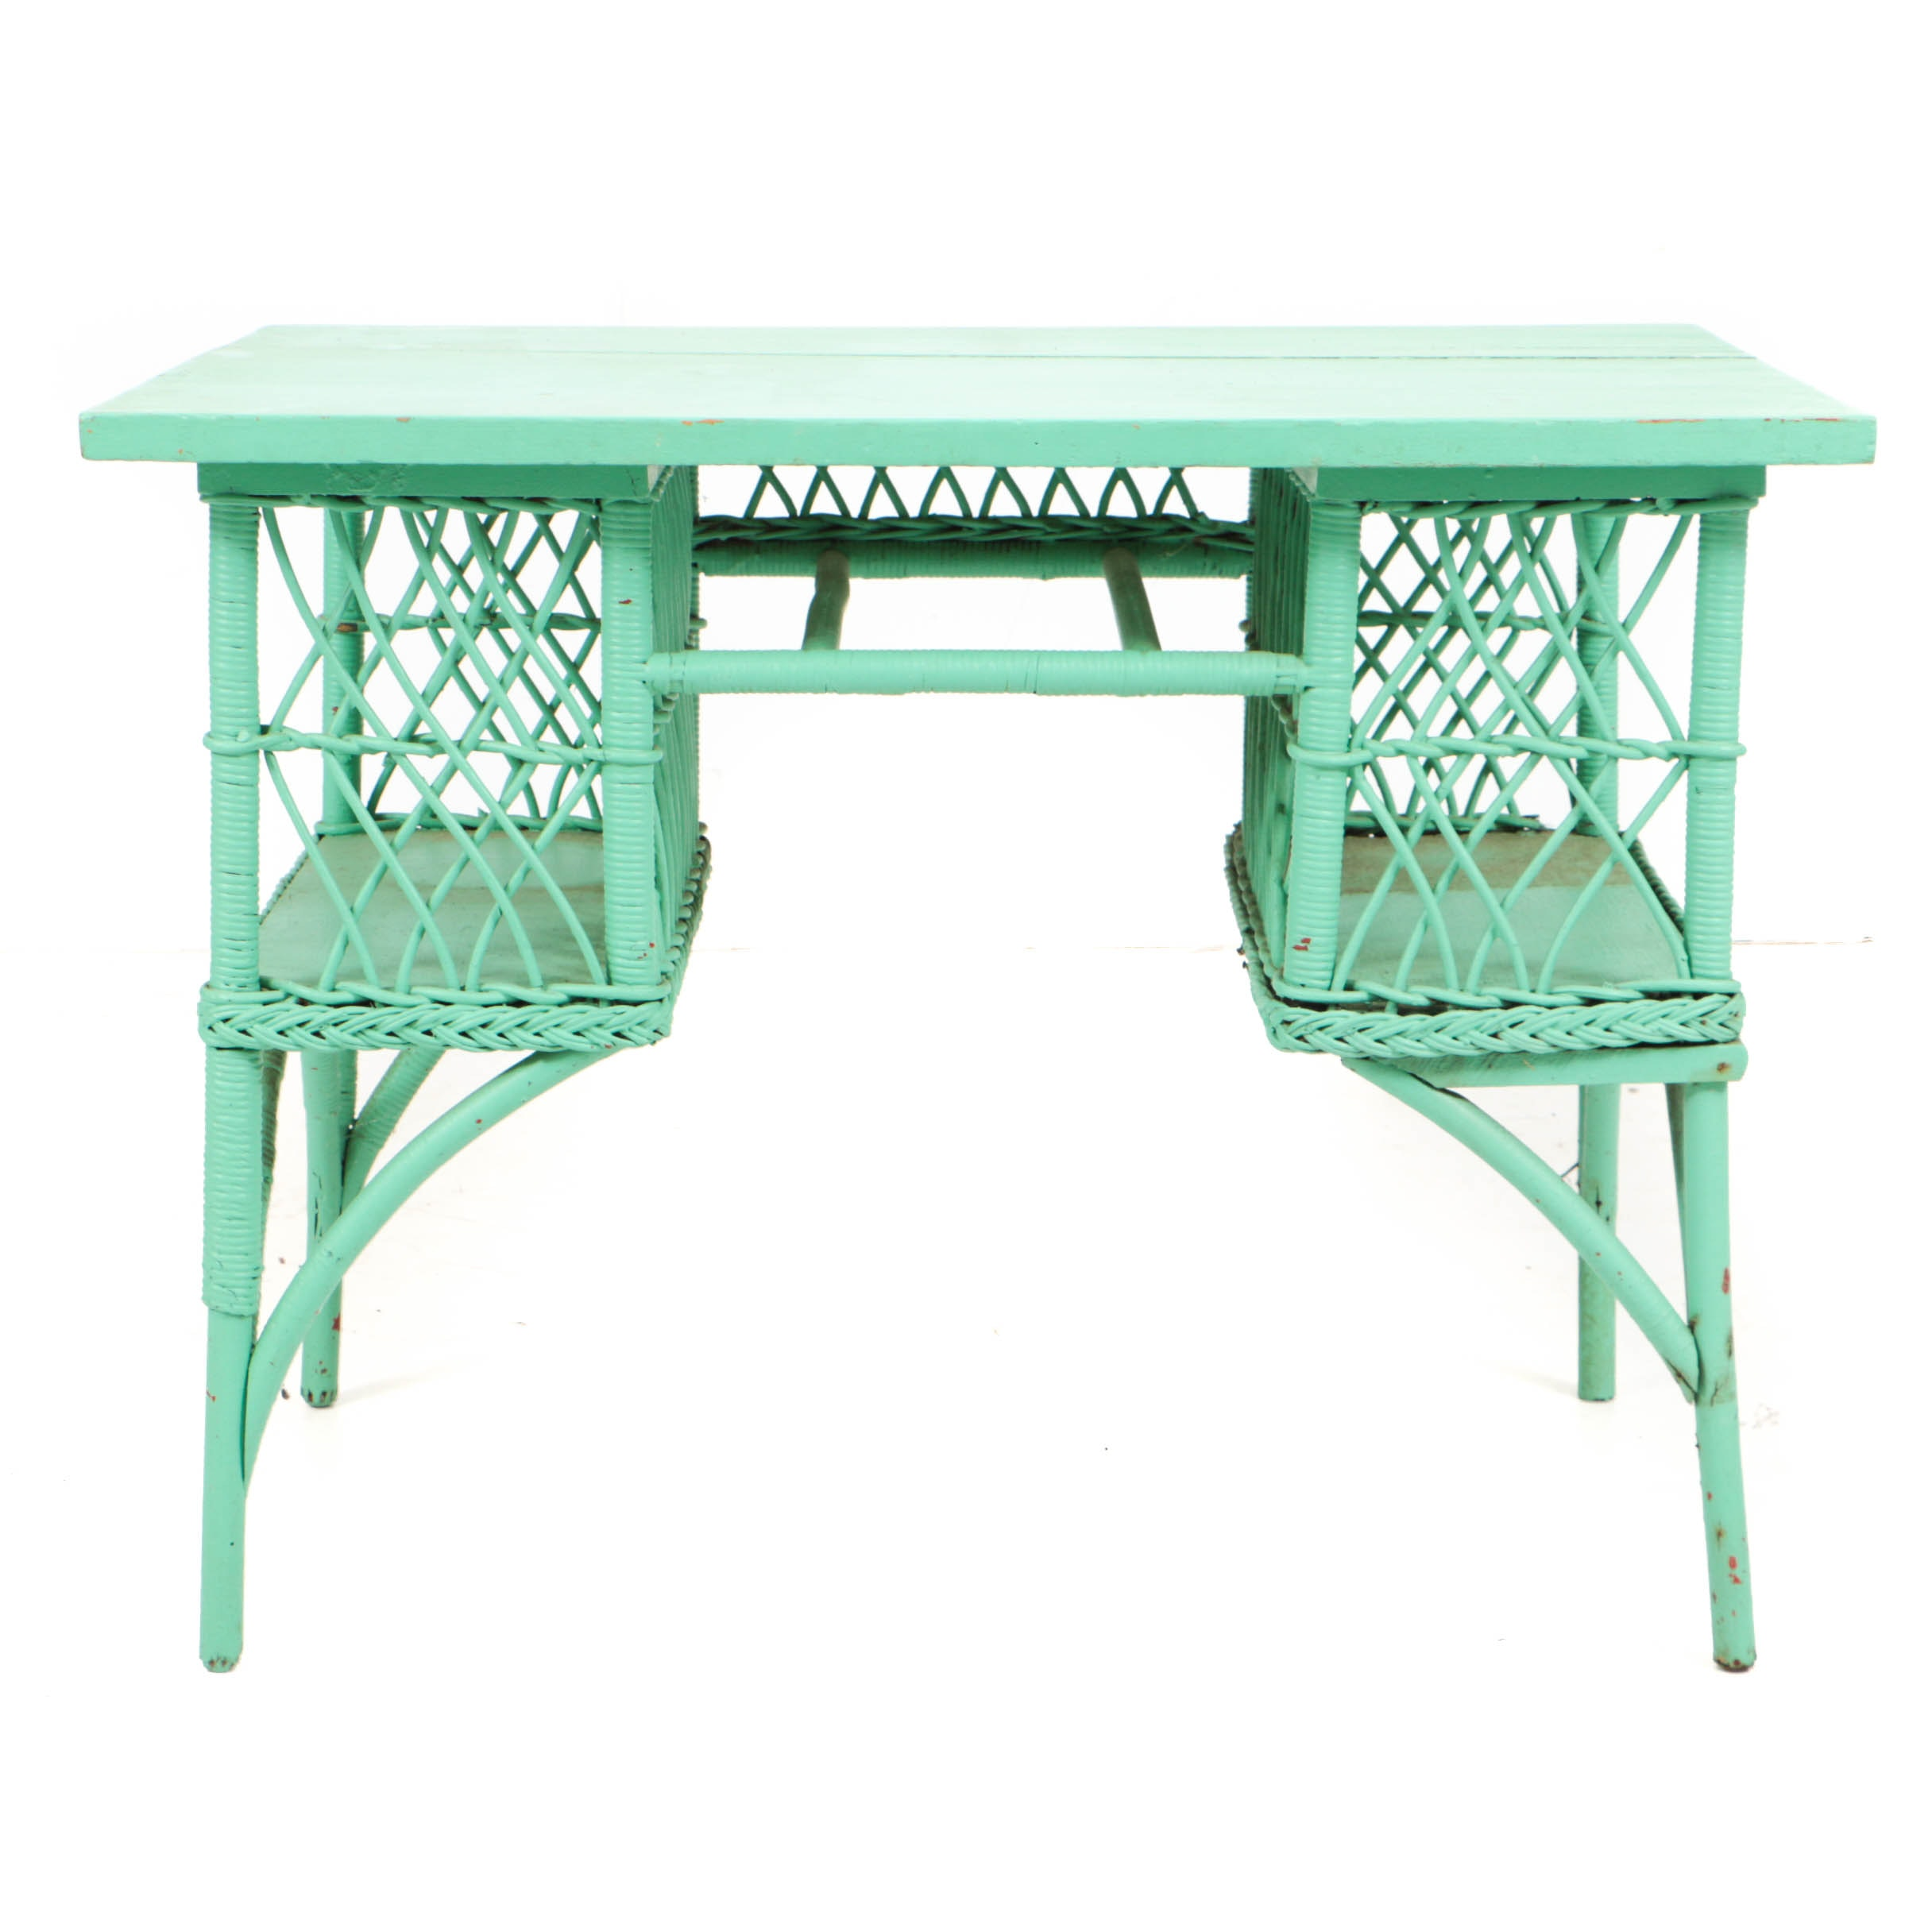 Antique Victorian Wicker and Oak Writing Table in Later, Green Paint